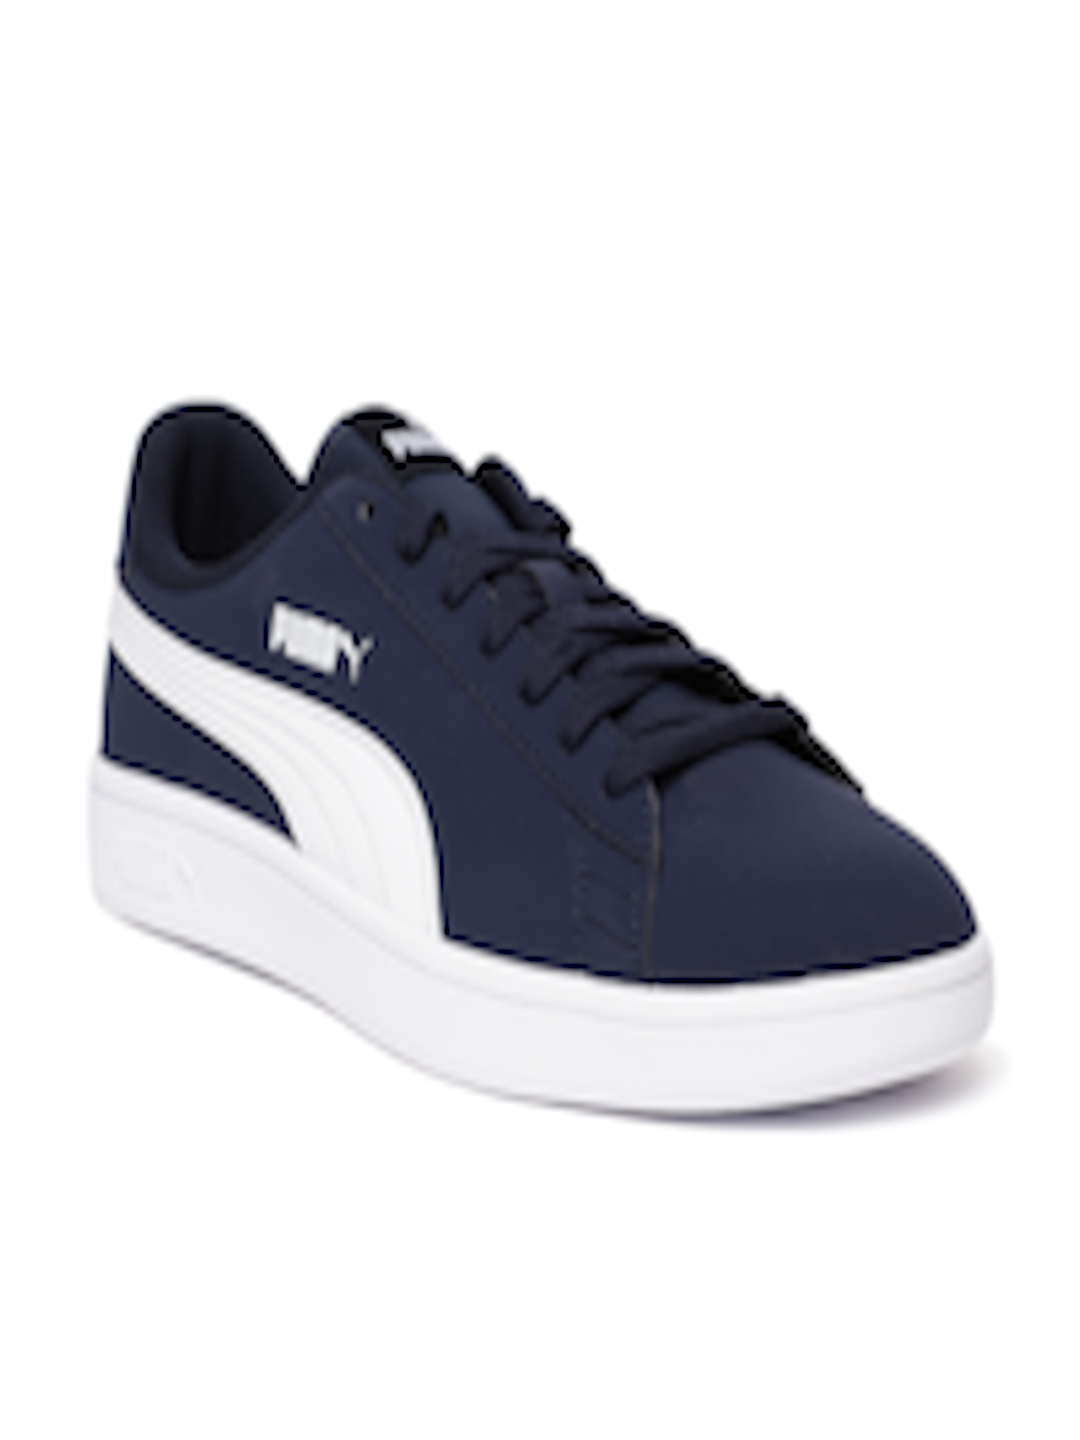 841a674f79f Buy Puma Unisex Navy Blue Smash V2 Buck Sneakers - Casual Shoes for Unisex  8160397 | Myntra